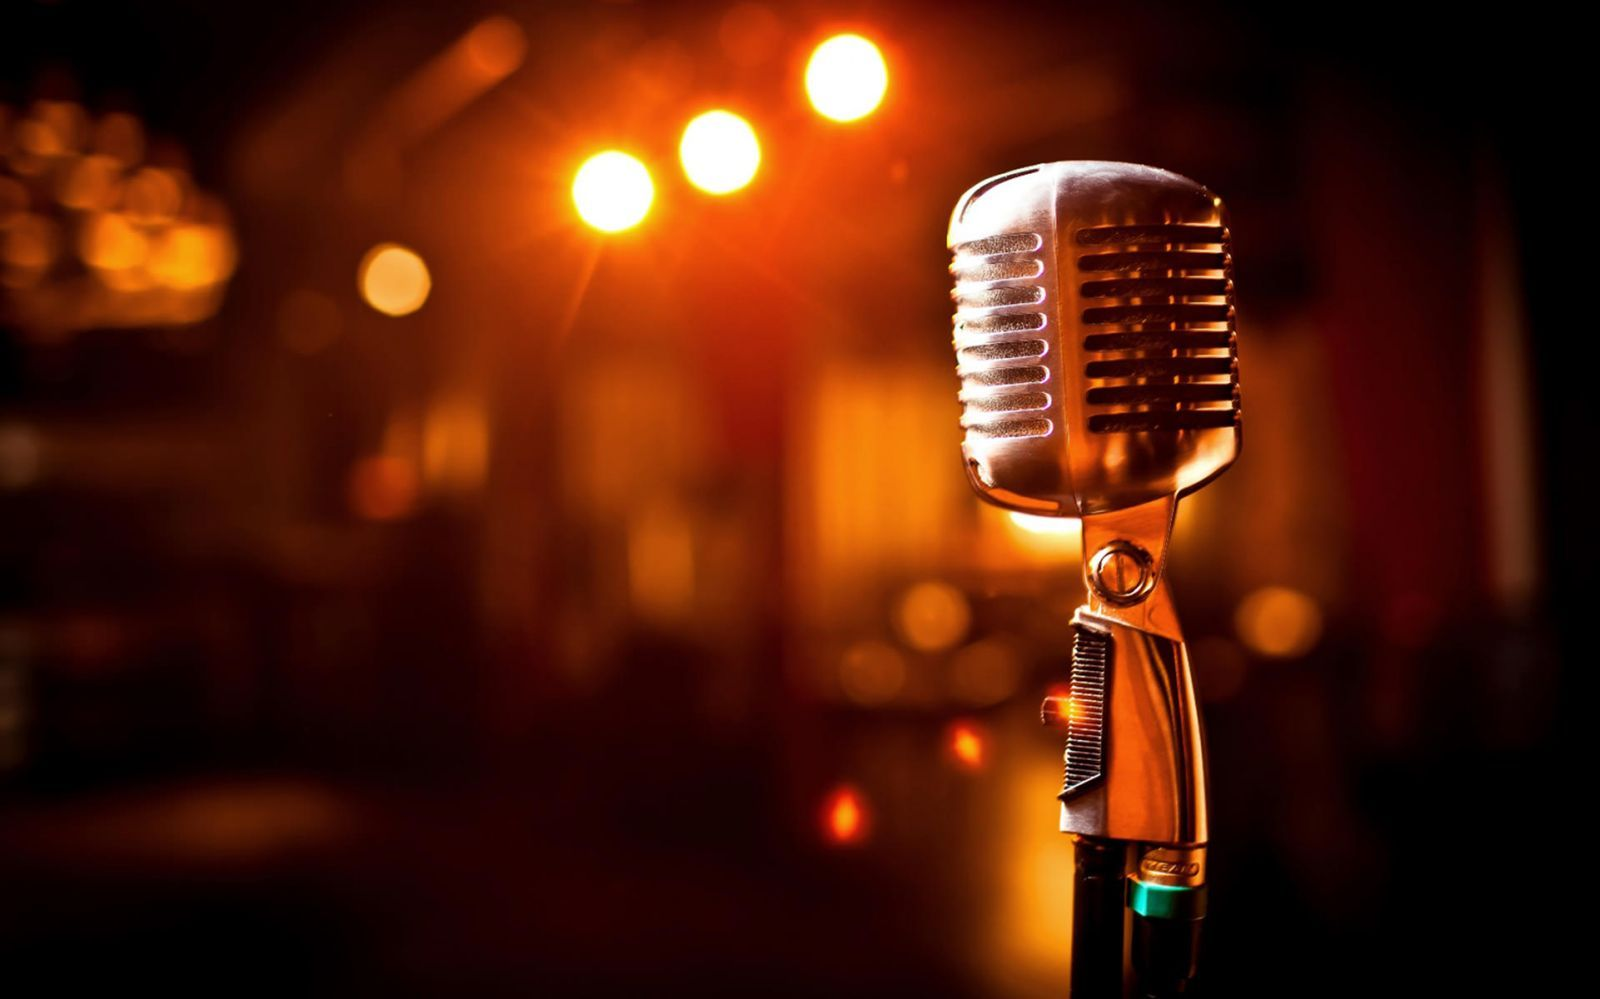 Open Mic Music Chateau Lettau Syndical Syndical Microphone Vintage Microphone Ted Talks